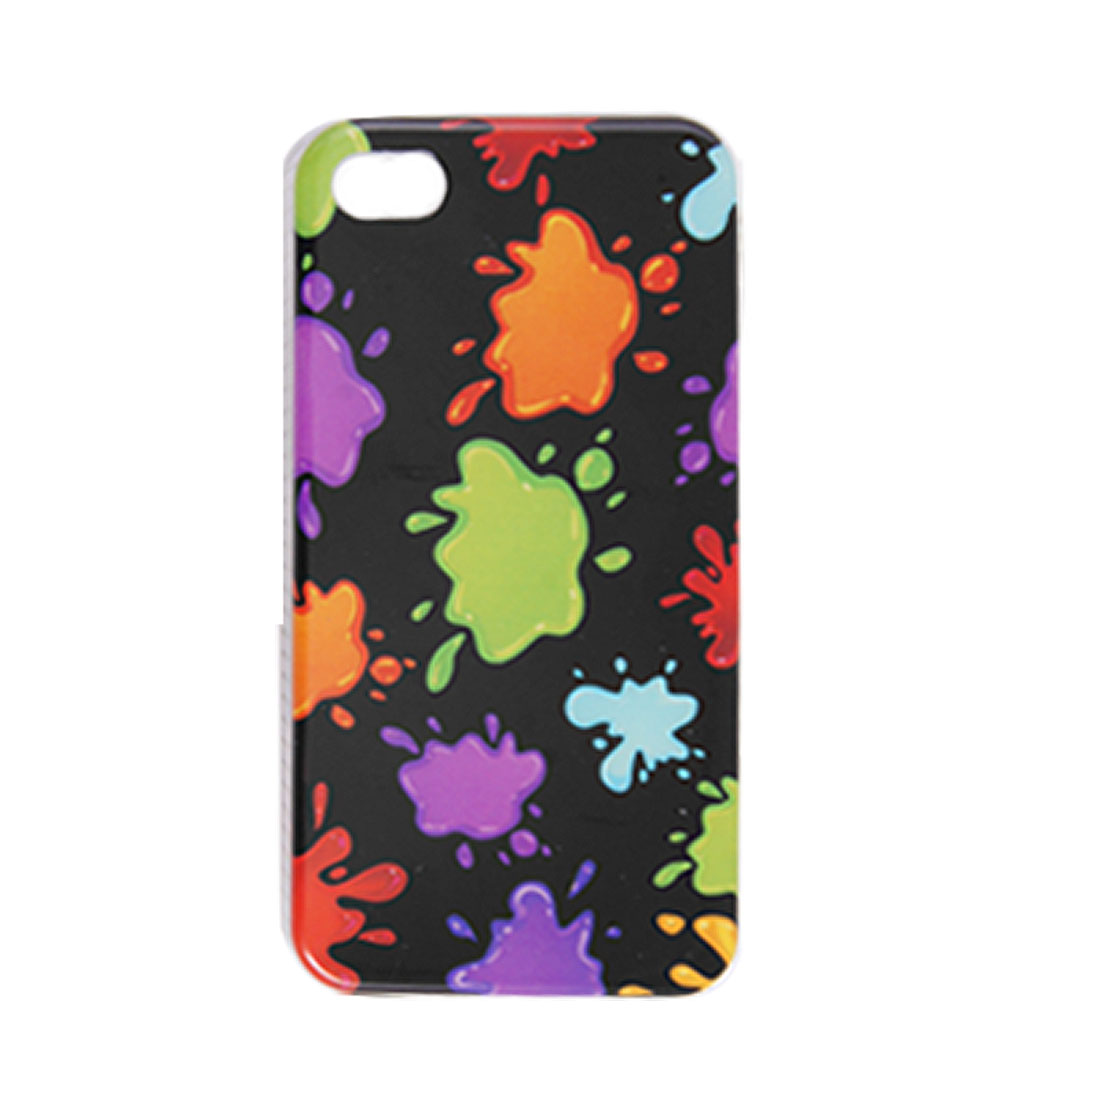 Colorful Water Drops Pattern IMD Plastic Back Case Black for iPhone 4 4G 4S